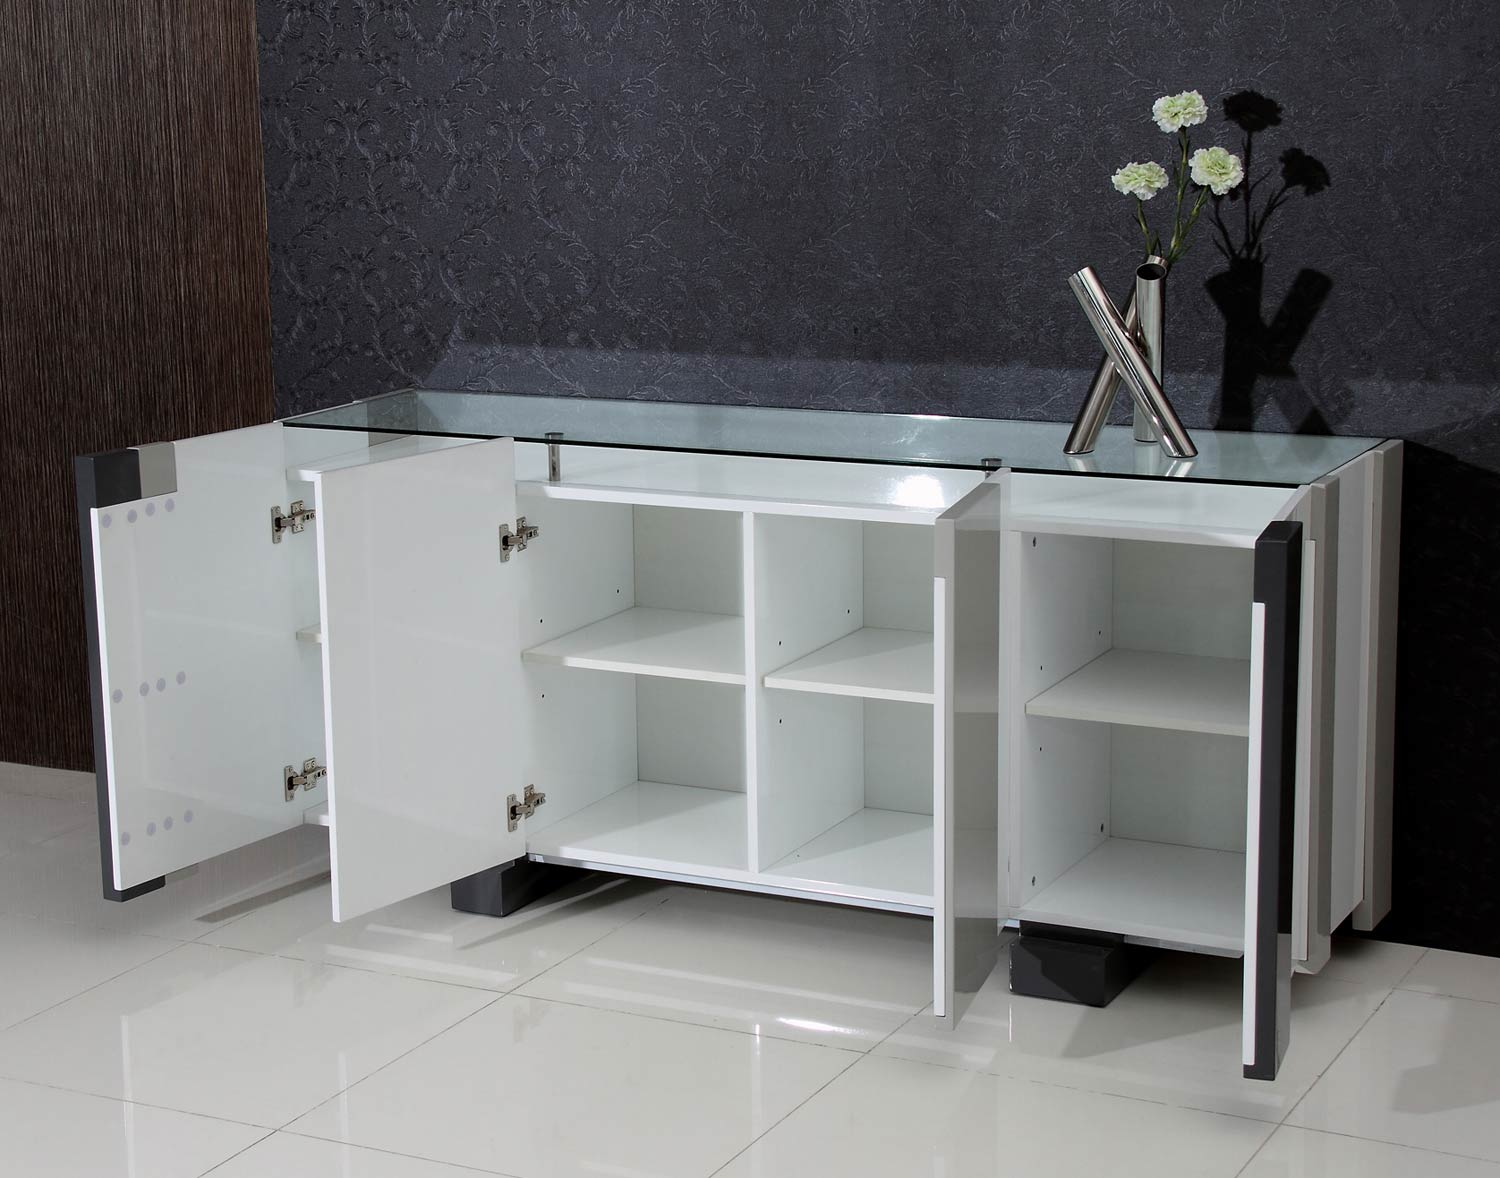 Chintaly Imports Shelley Modern Four-Door Buffet Glass Top - Clear Glass/Gloss White and Gray